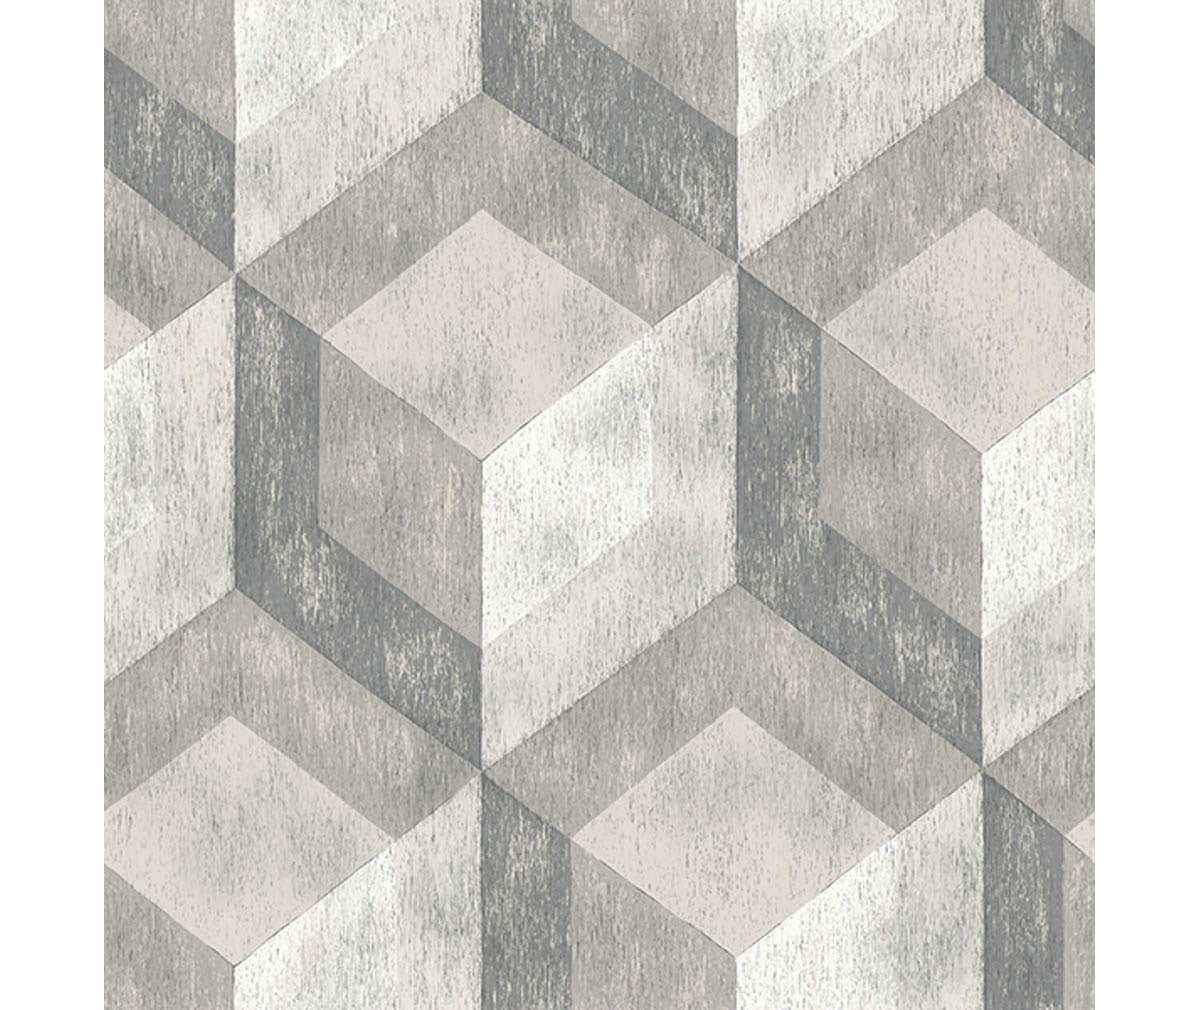 Rustic Wood Tile Ash Geometric Wallpaper available at Barrydowne Paint